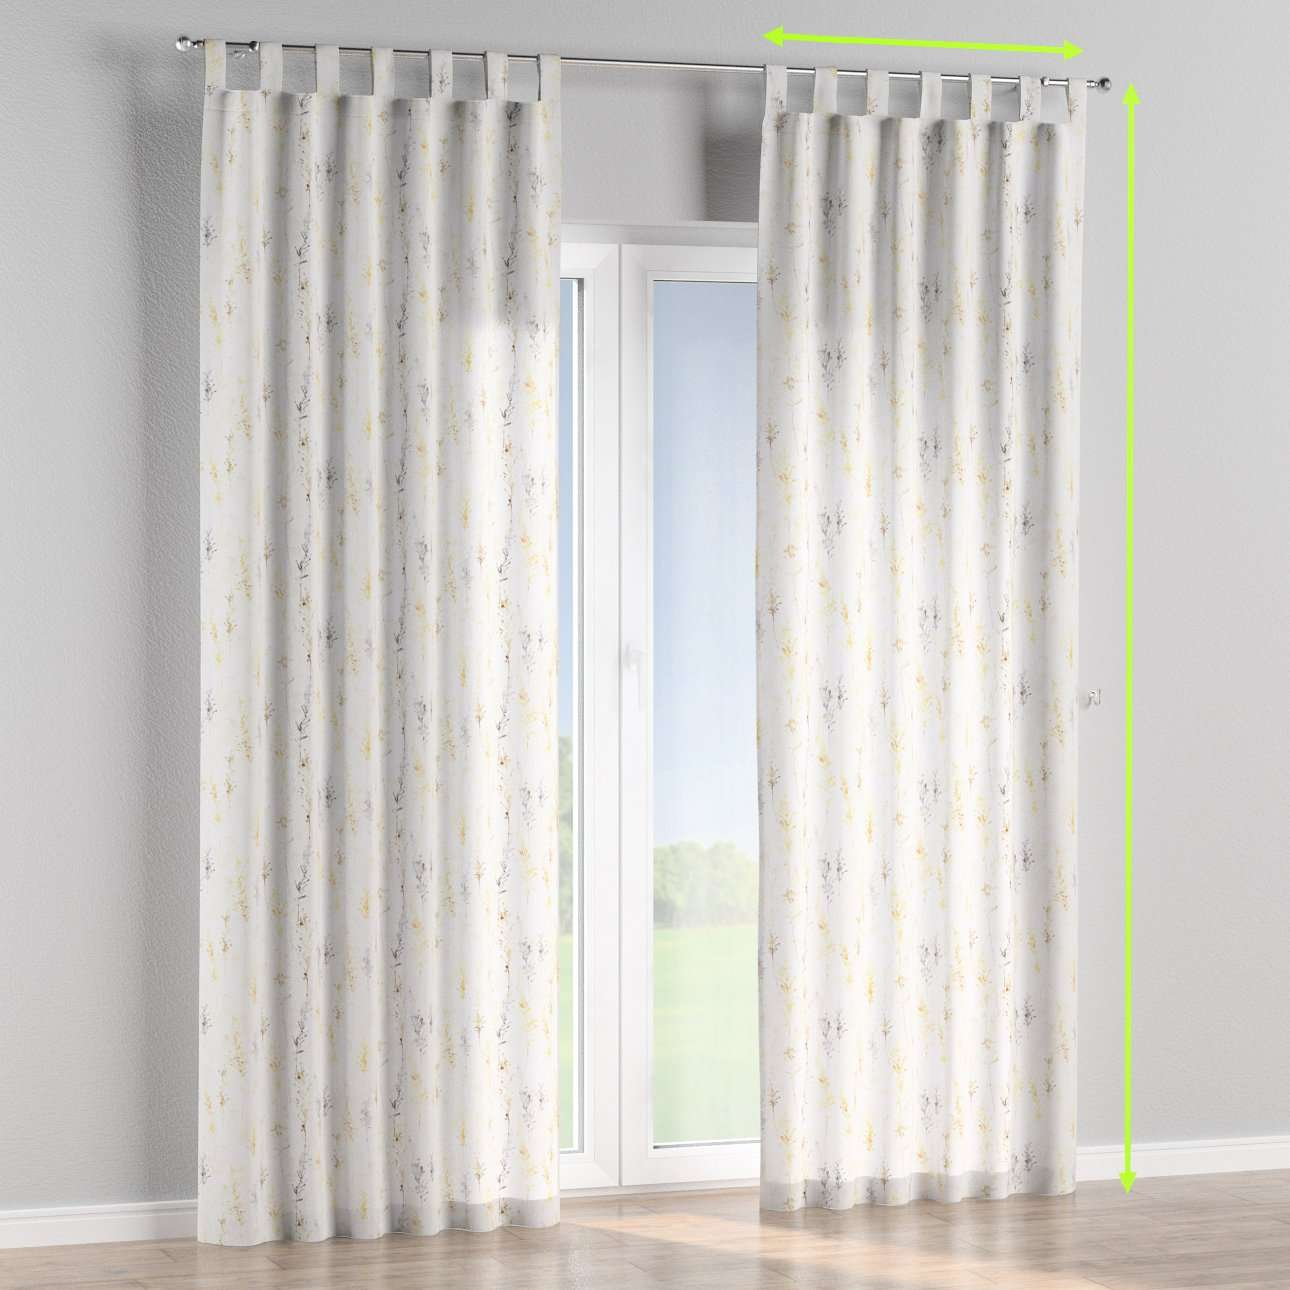 Tab top lined curtains in collection Acapulco, fabric: 141-36